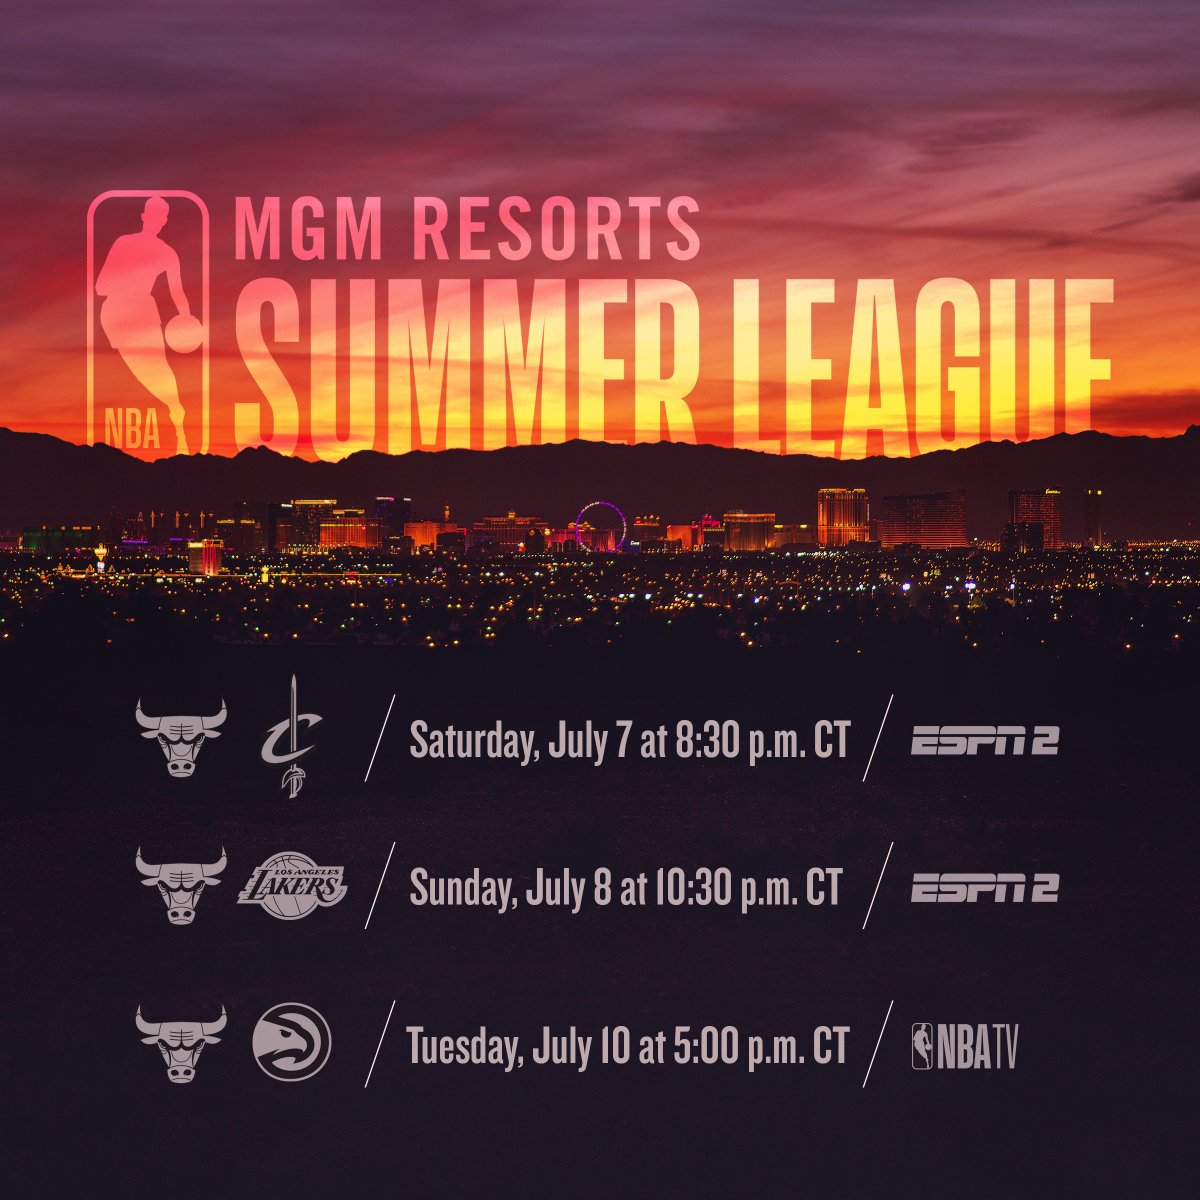 ICYMI: Our @NBASummerLeague schedule has been announced!